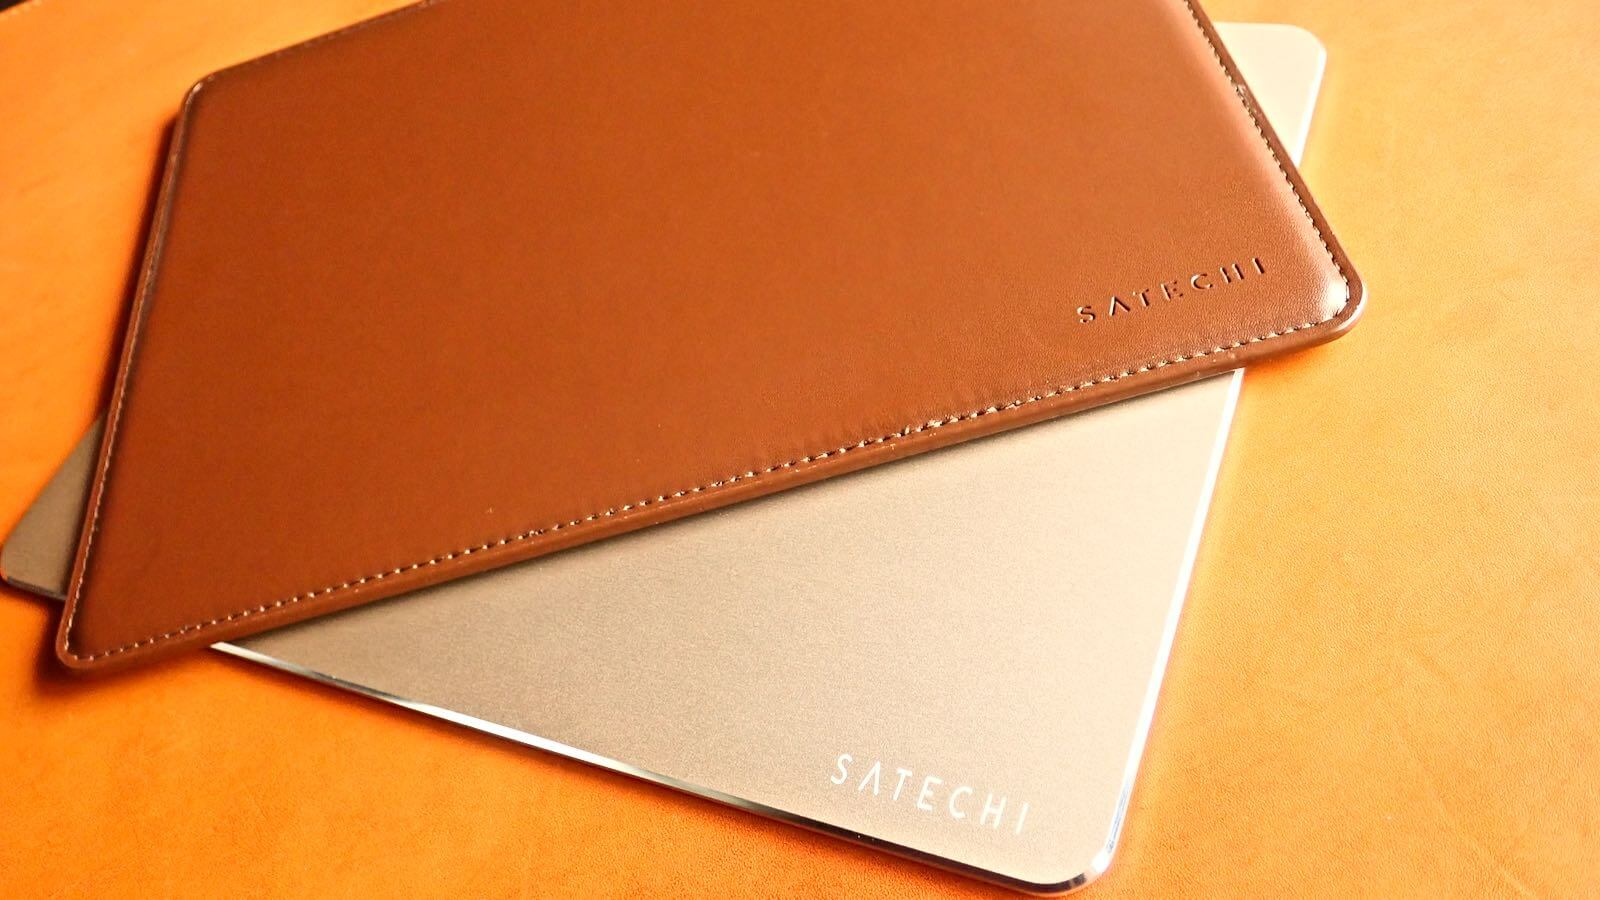 0196 Satechi Mouse pad Aluminum EcoLeather 17